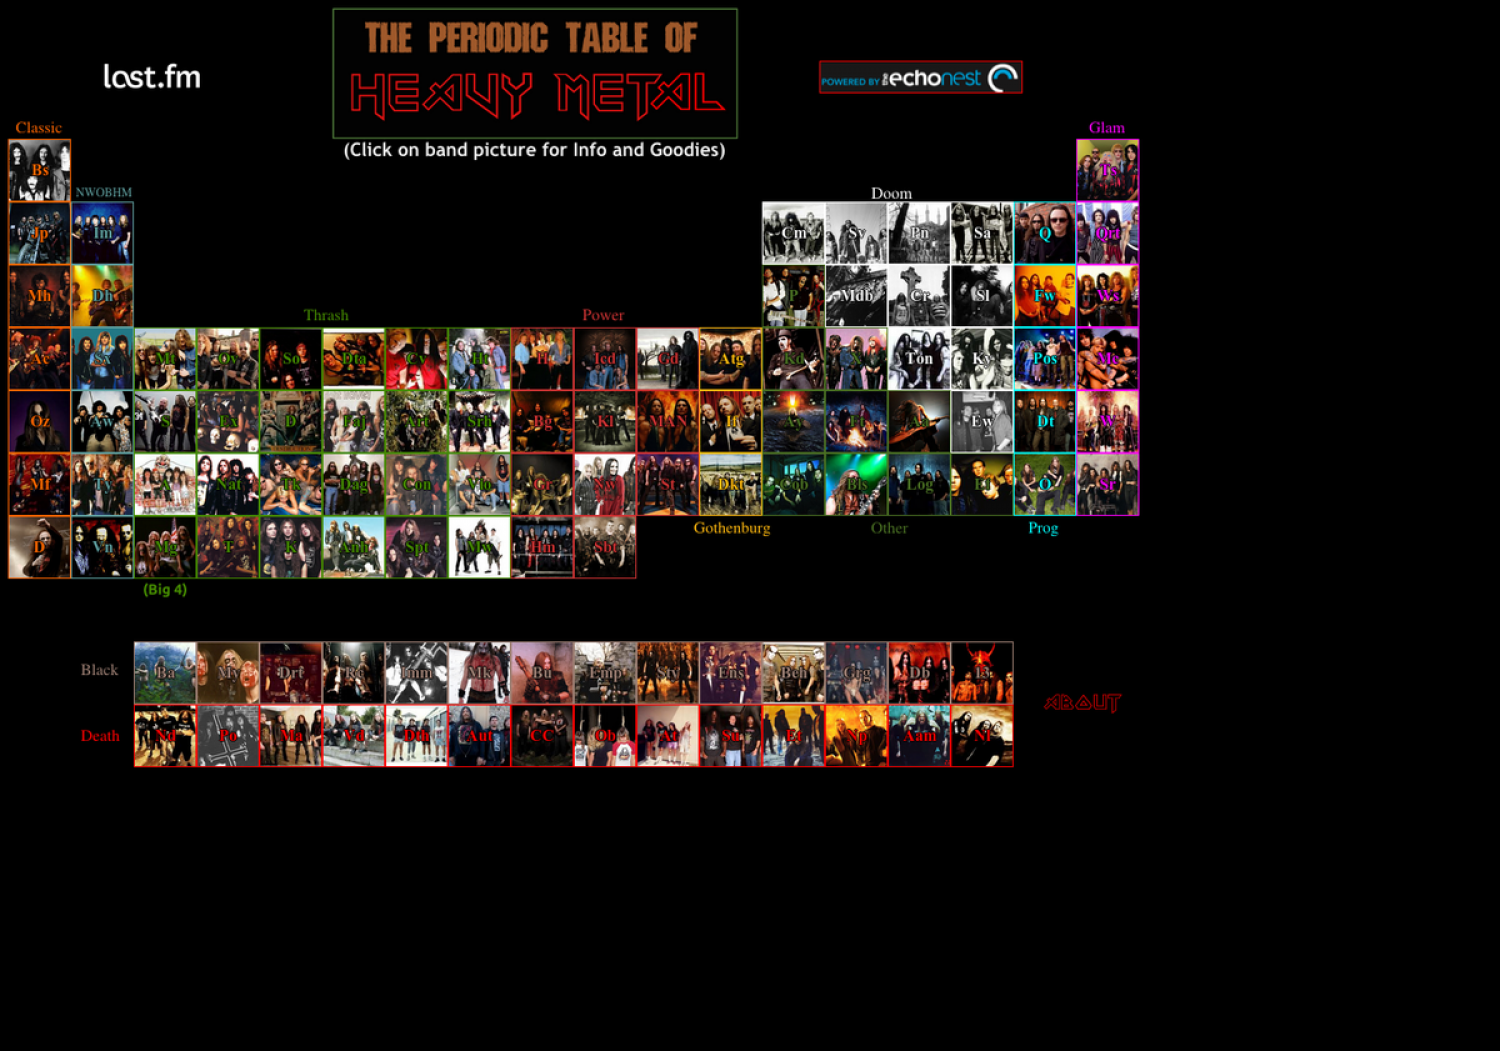 Periodic Table of Heavy Metal Infographic